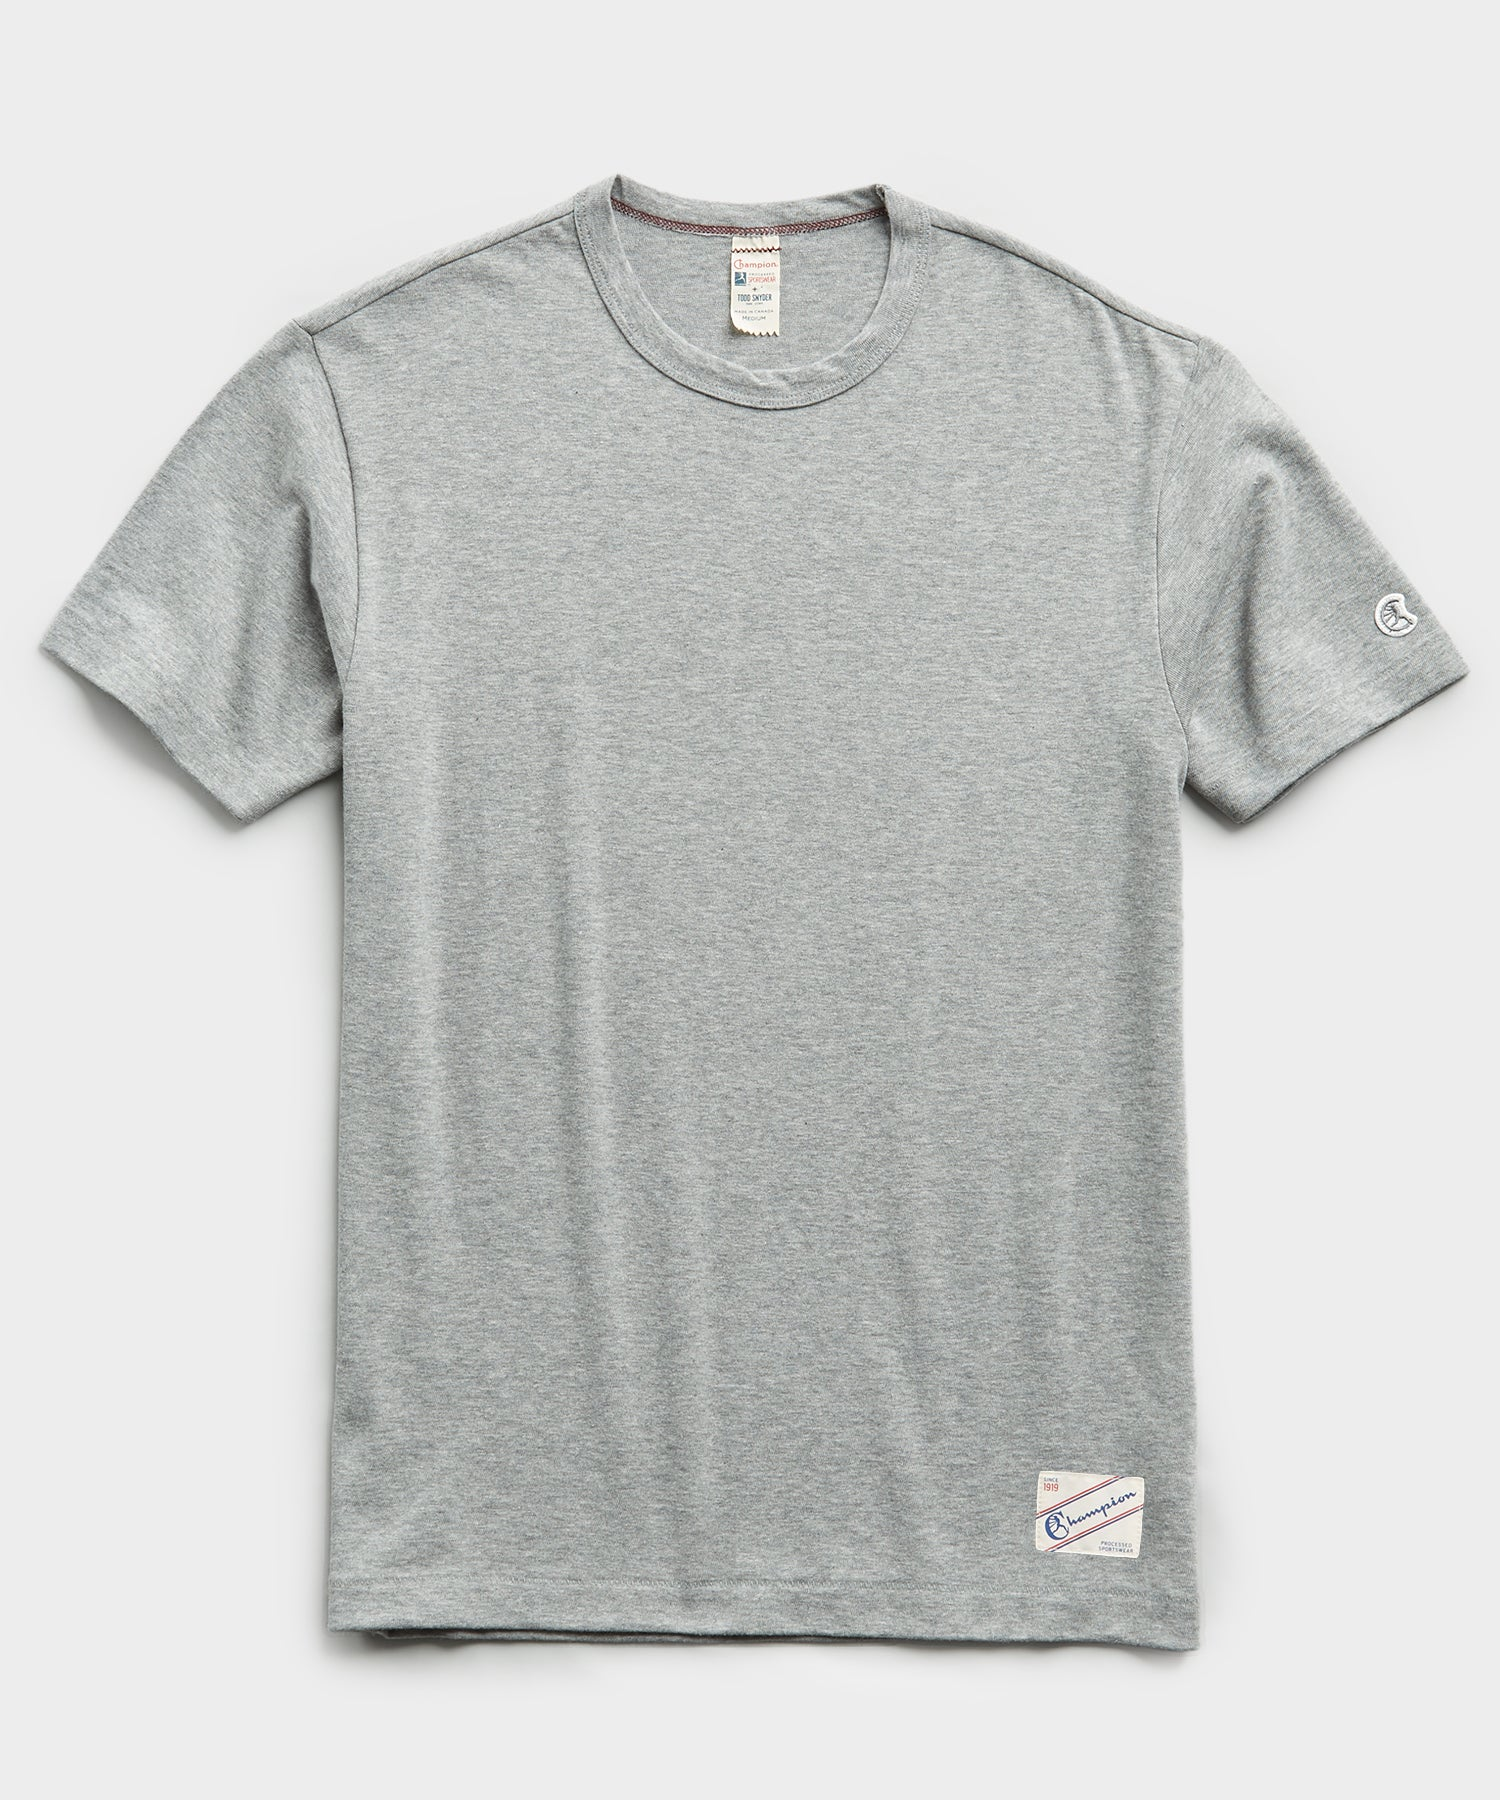 Heavy Weight Short Sleeve Jock Tag Tee in Grey Mix